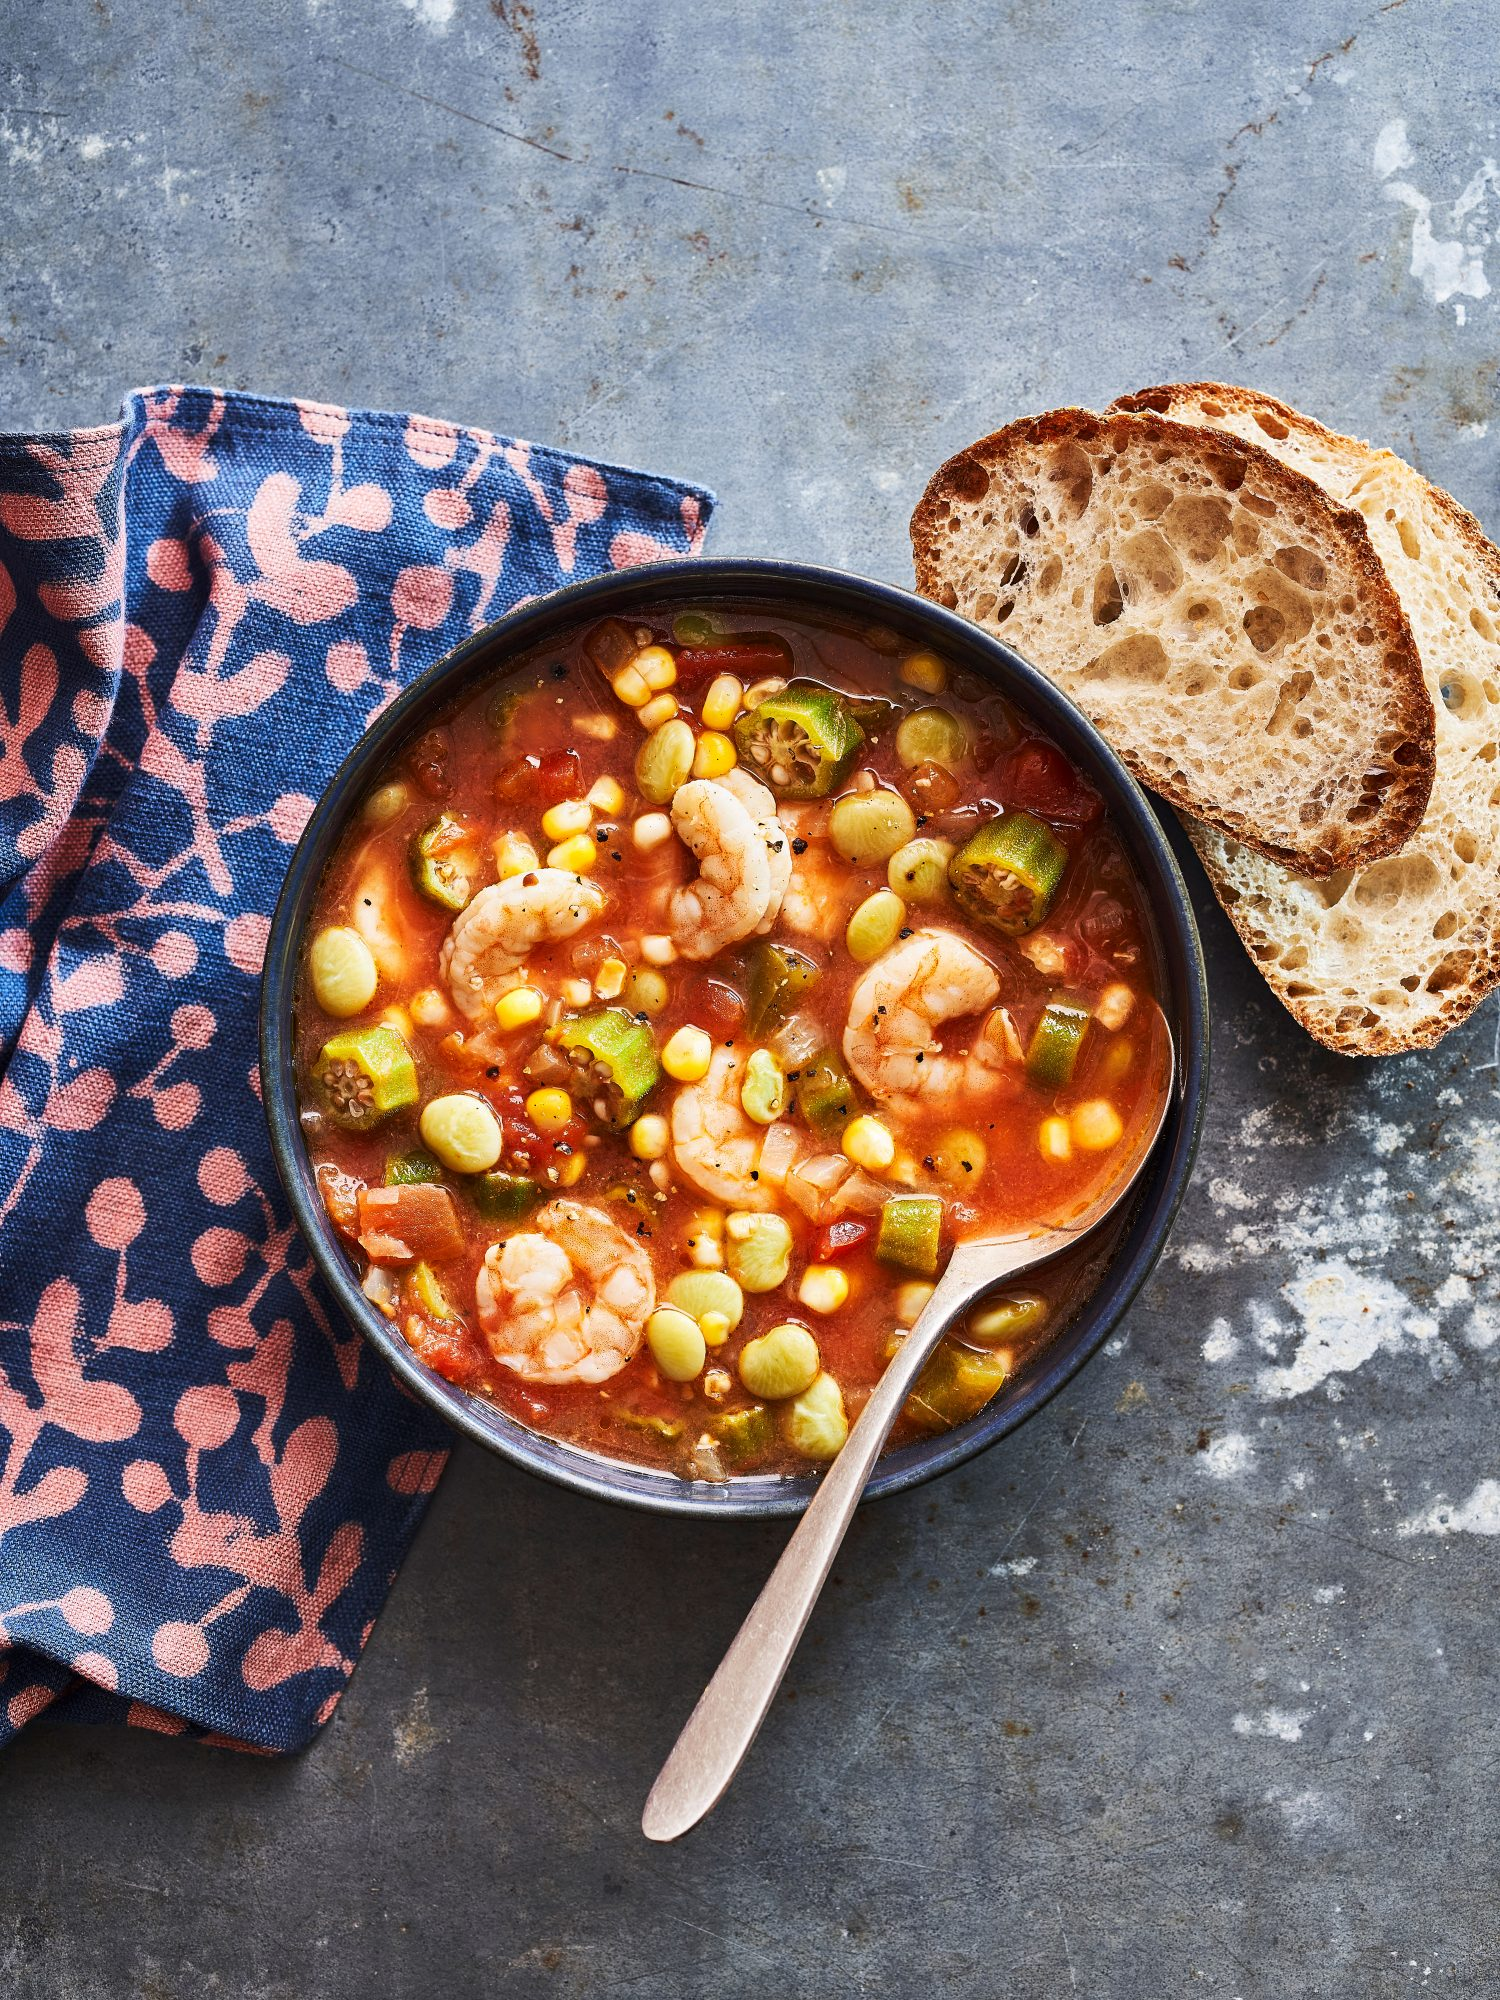 Kardea Brown's Okra Soup with Shrimp